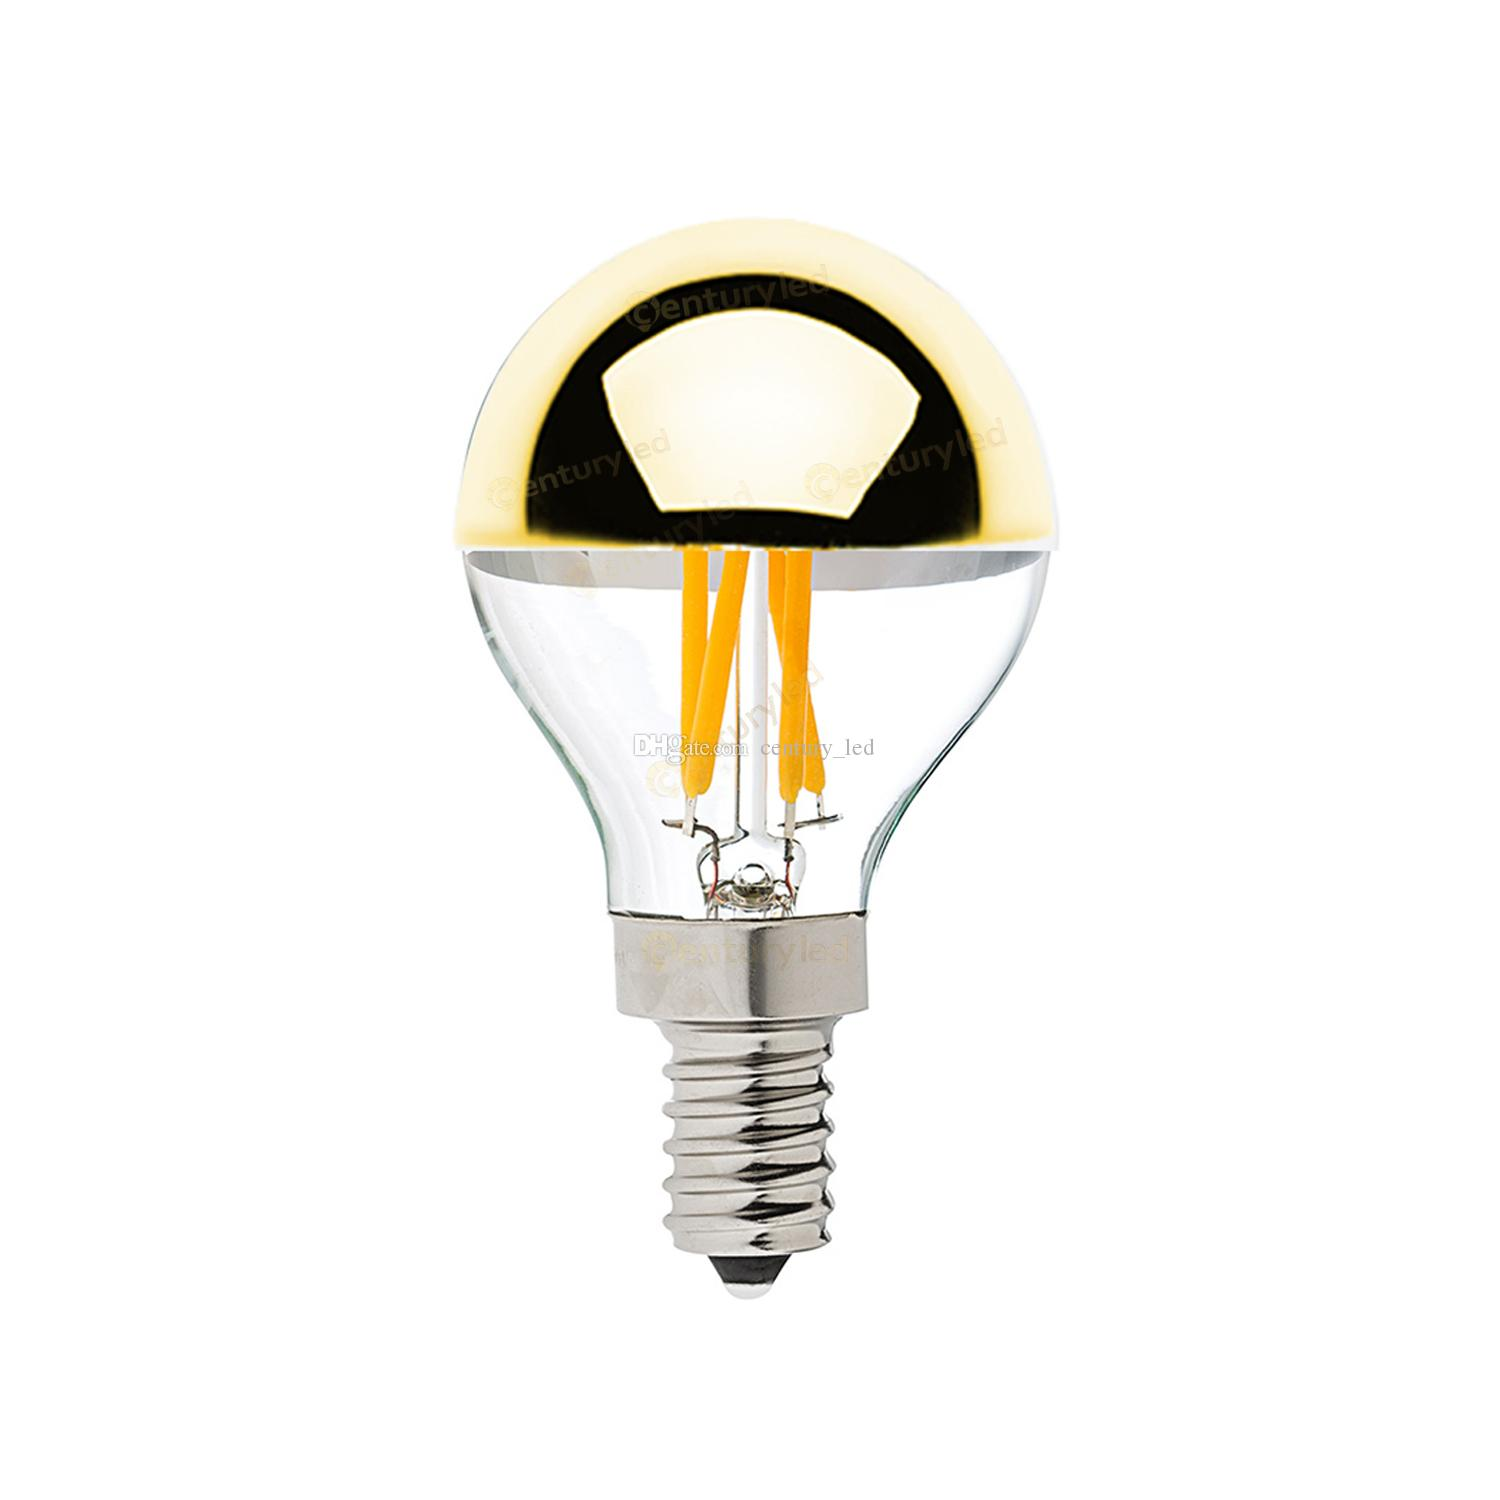 best gold mirrorg45 globe led filament bulbe12 e14 standard basewarm household gu10 led bulbs g9 led bulb